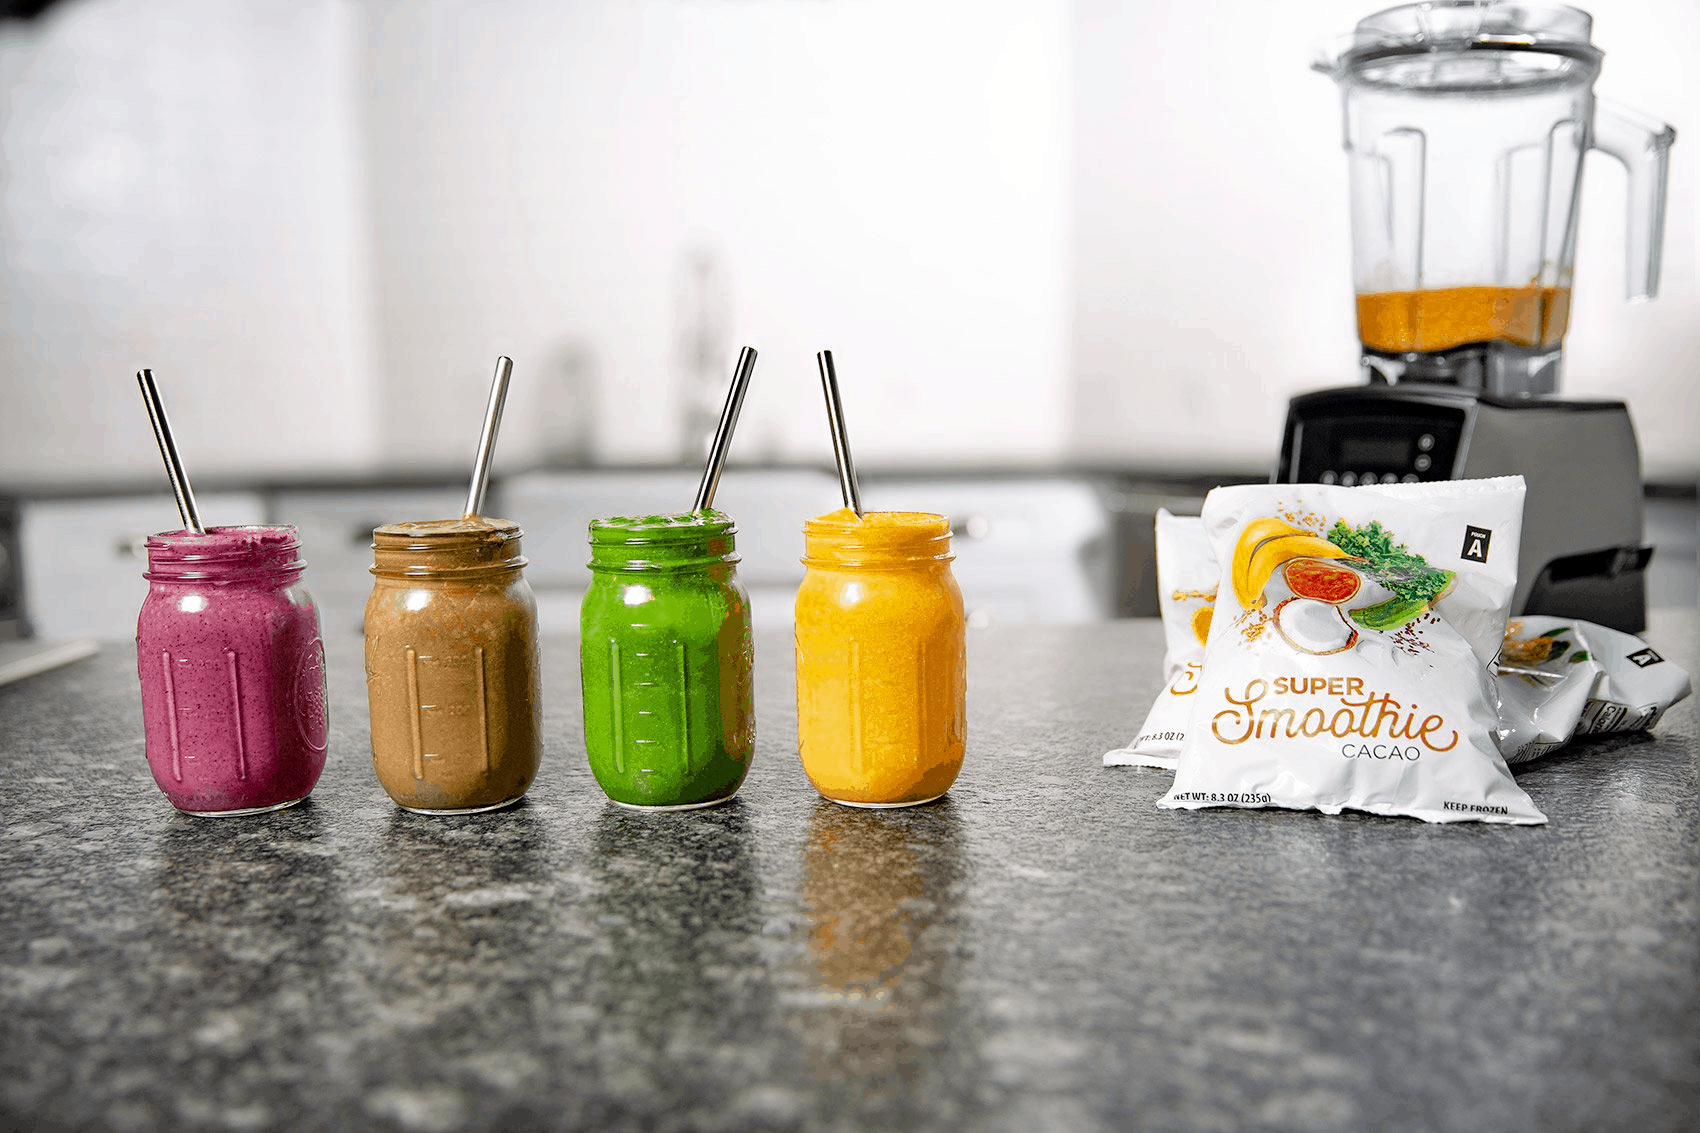 SmoothieBox Sale: Get $20 Off!